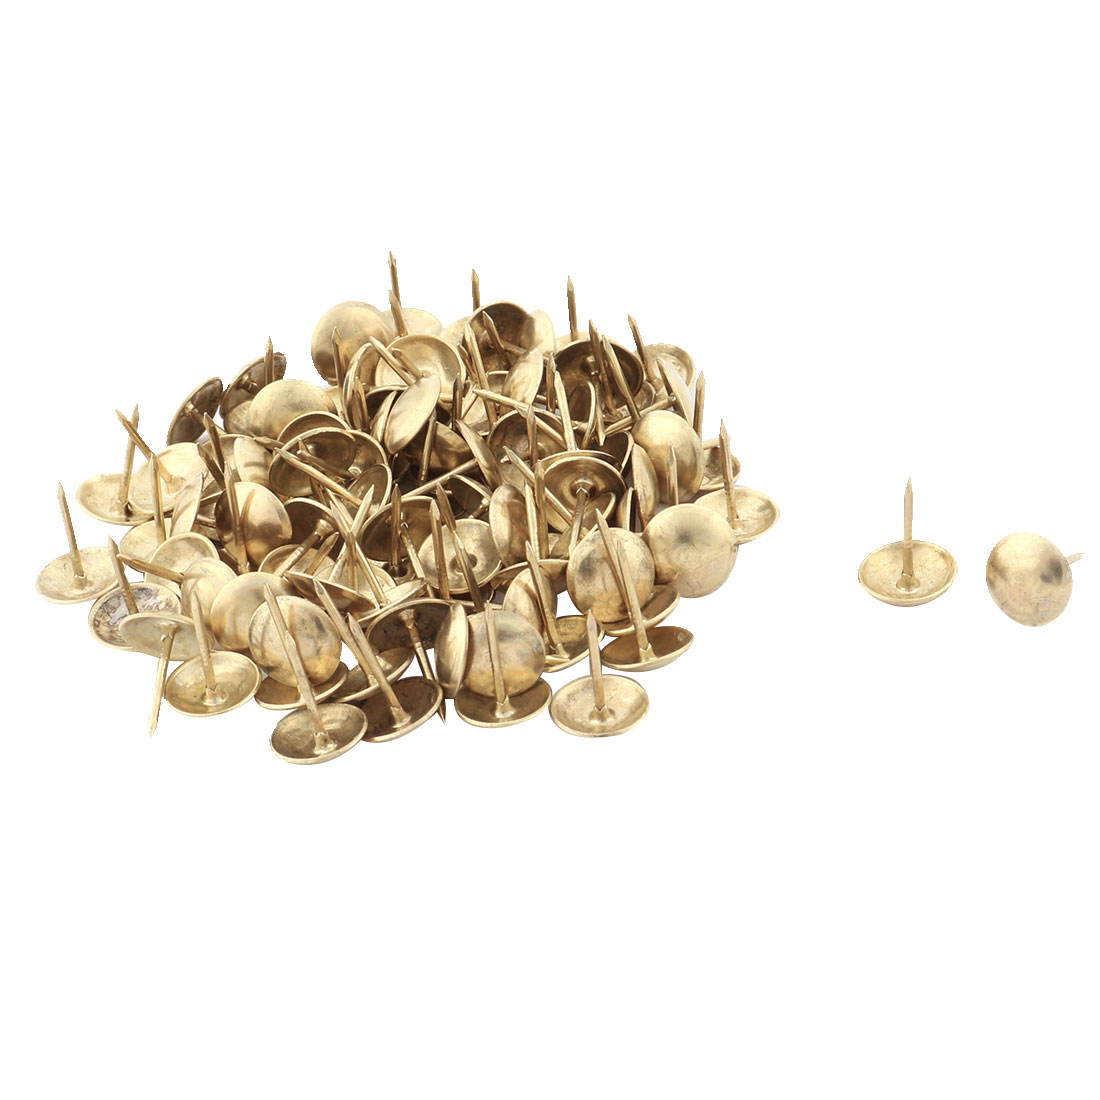 Home Furniture Chair Metal Round Cap Upholstery Thumb Tack Nail Pushpin Gold Tone 94pcs